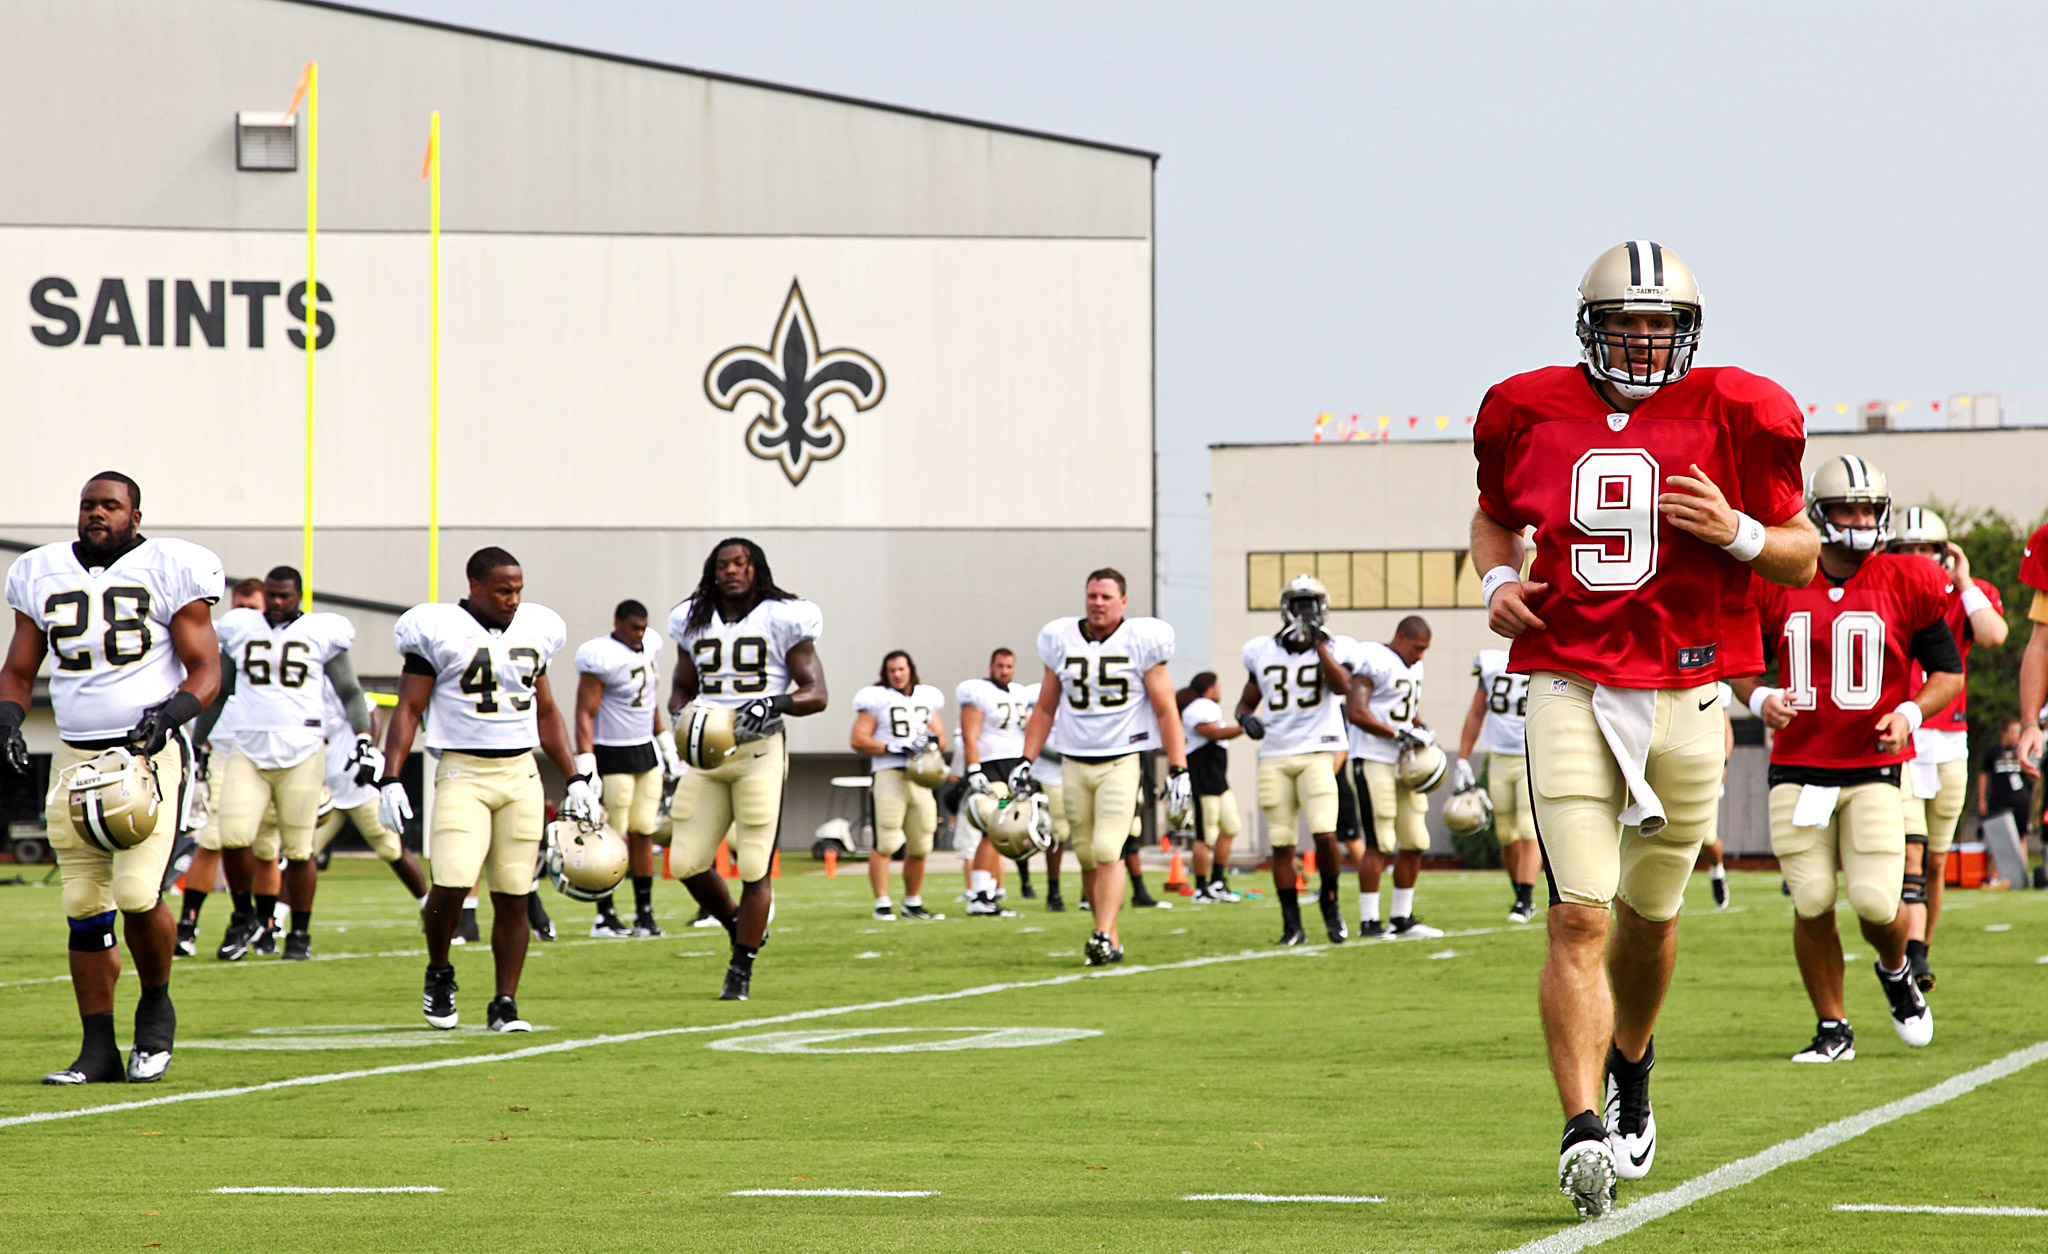 Drew Brees and teammates